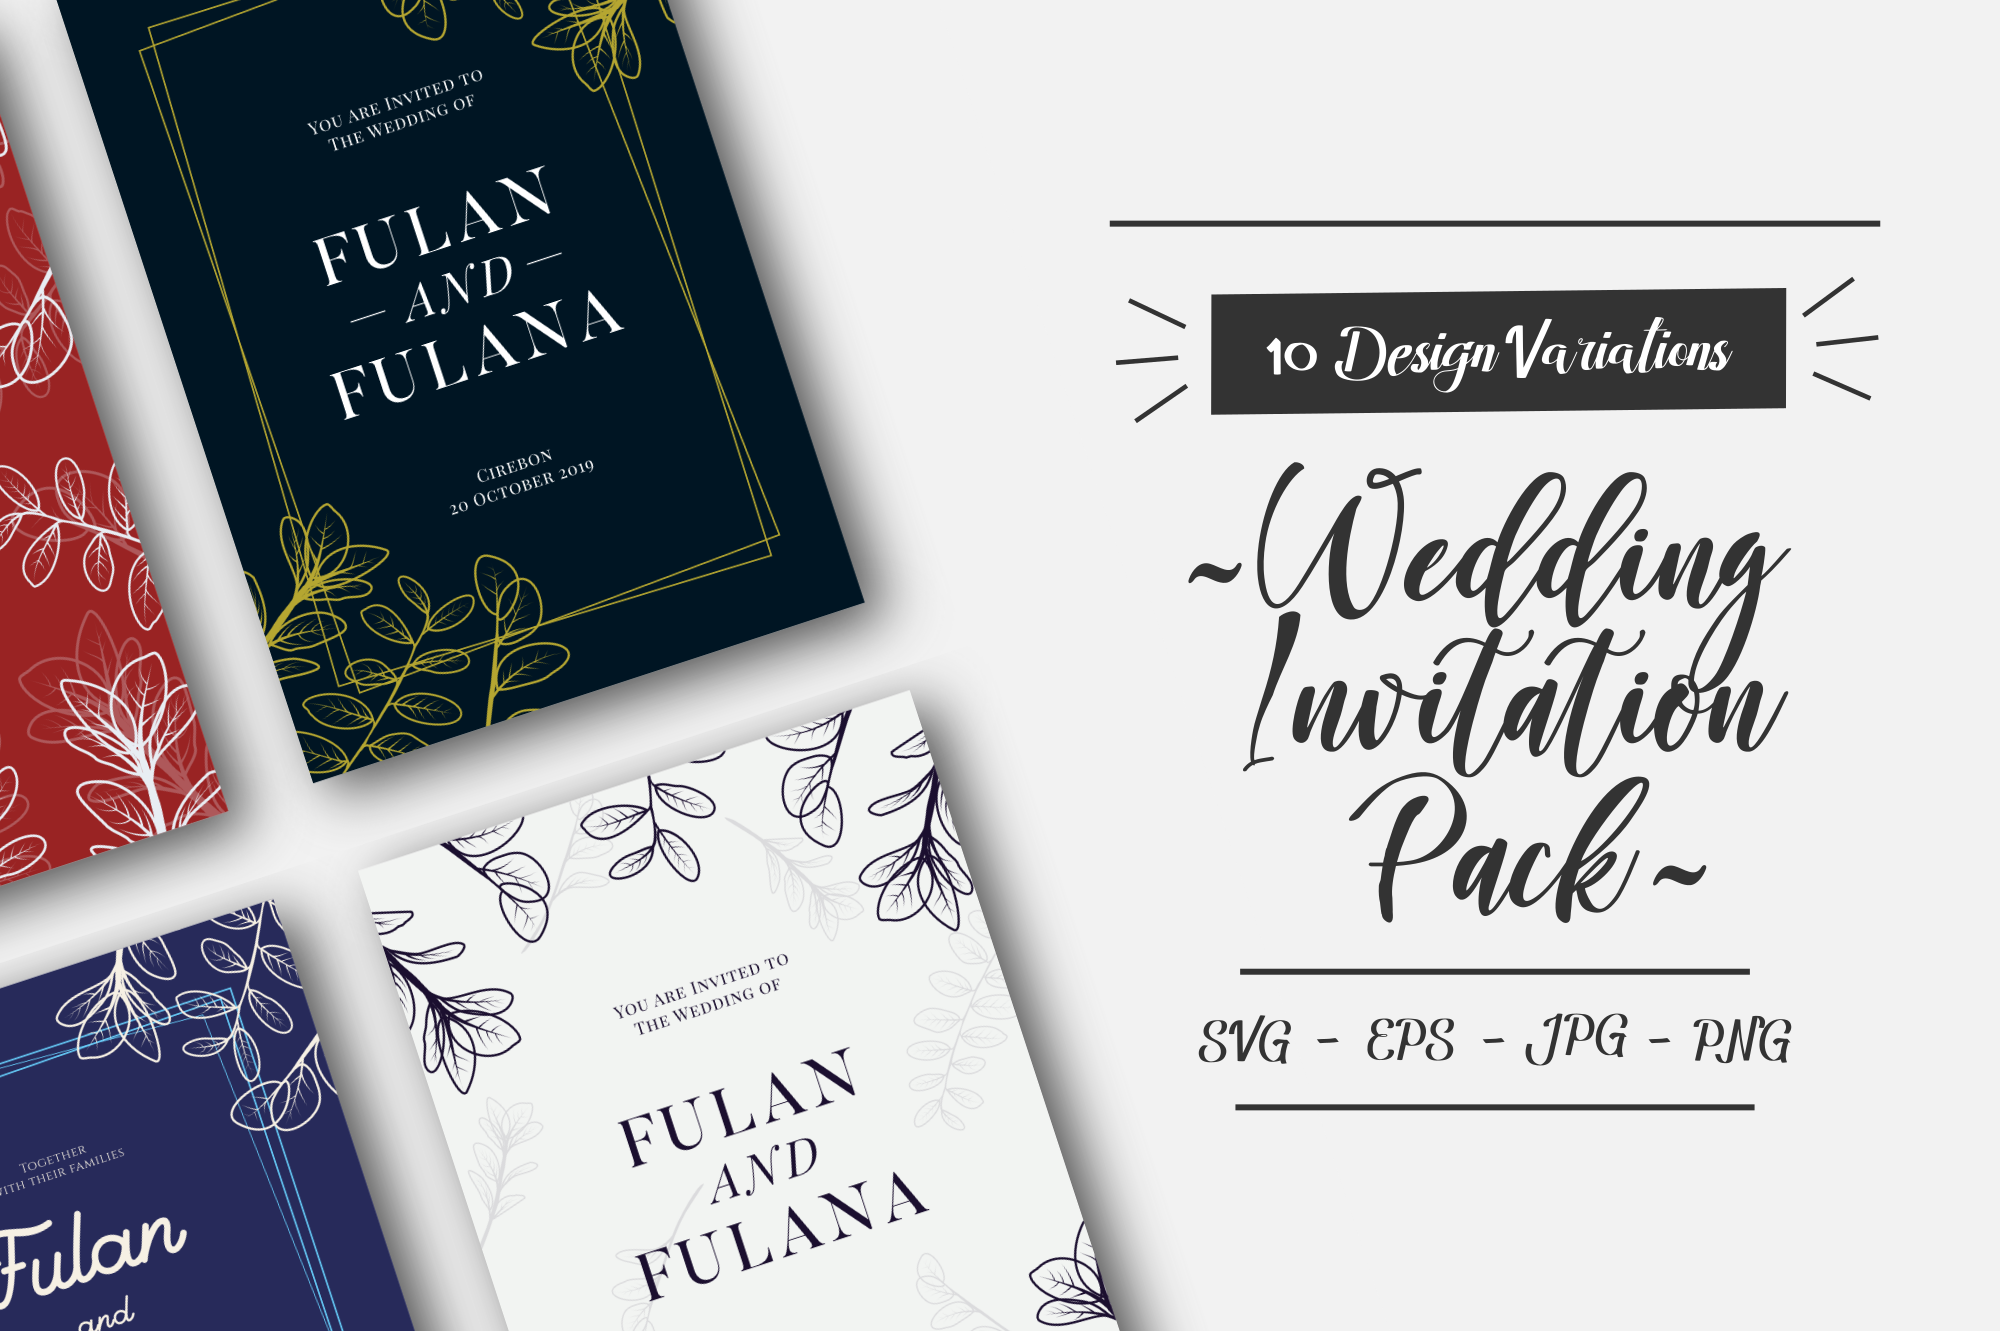 Hand Drawn Foral Wedding Invitation Pack Graphic By 1211 Design Creative Fabrica